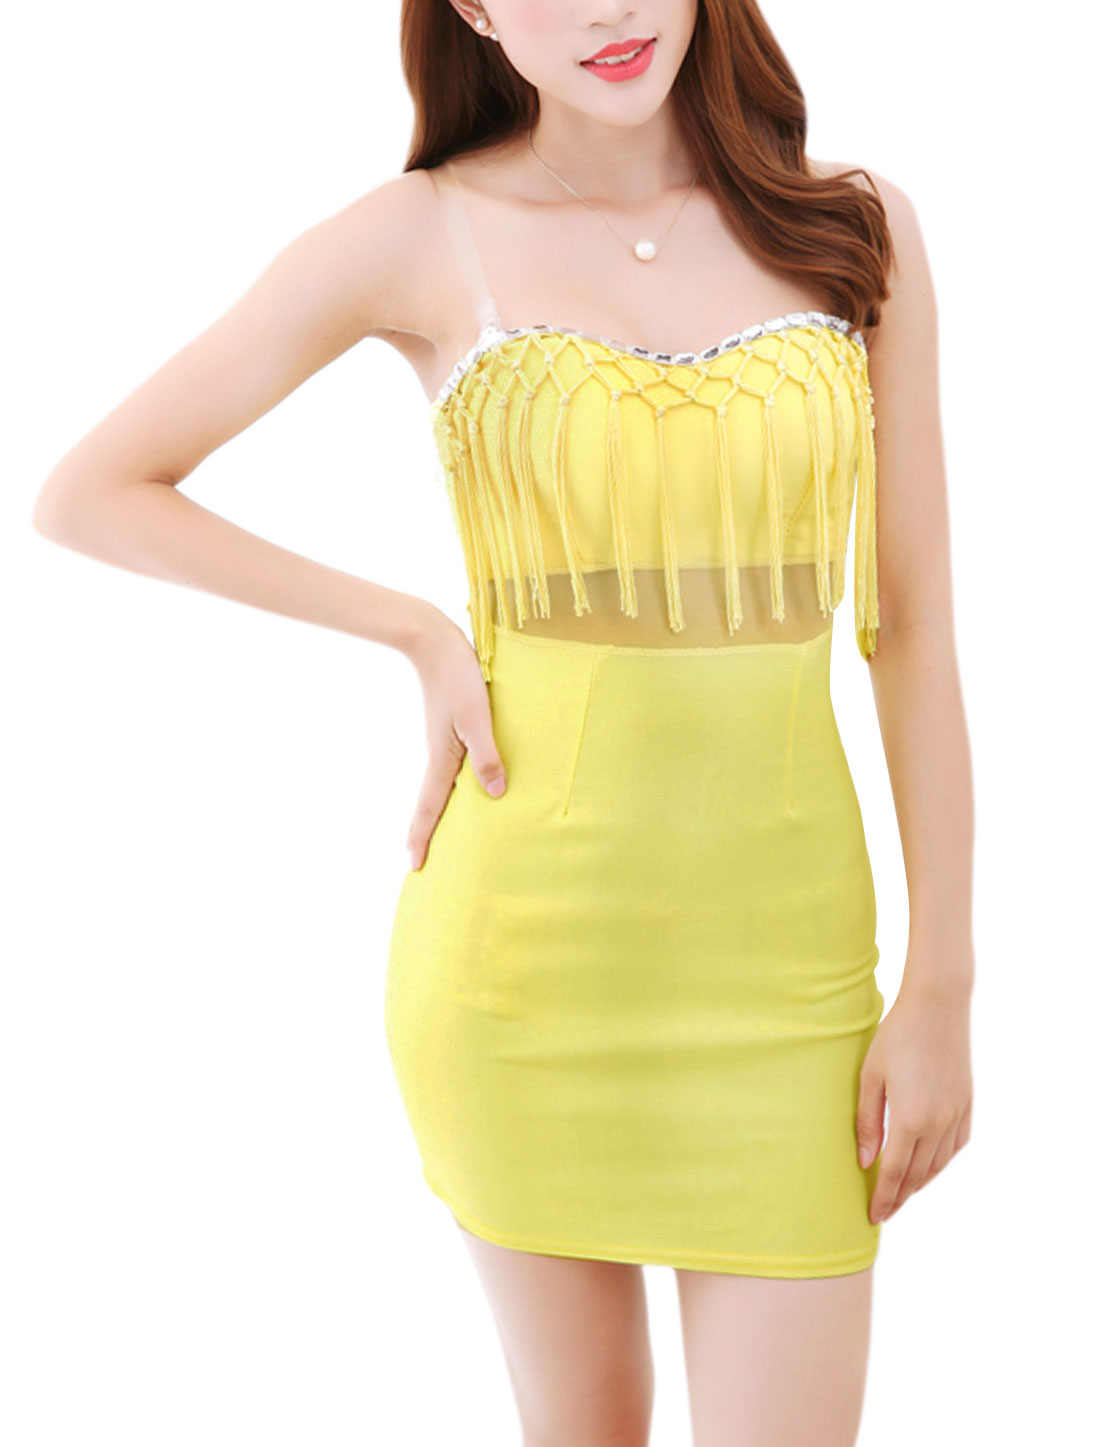 Ladies Netted Fringe Neckline Padded Bust Wiggle Dress Yellow XS